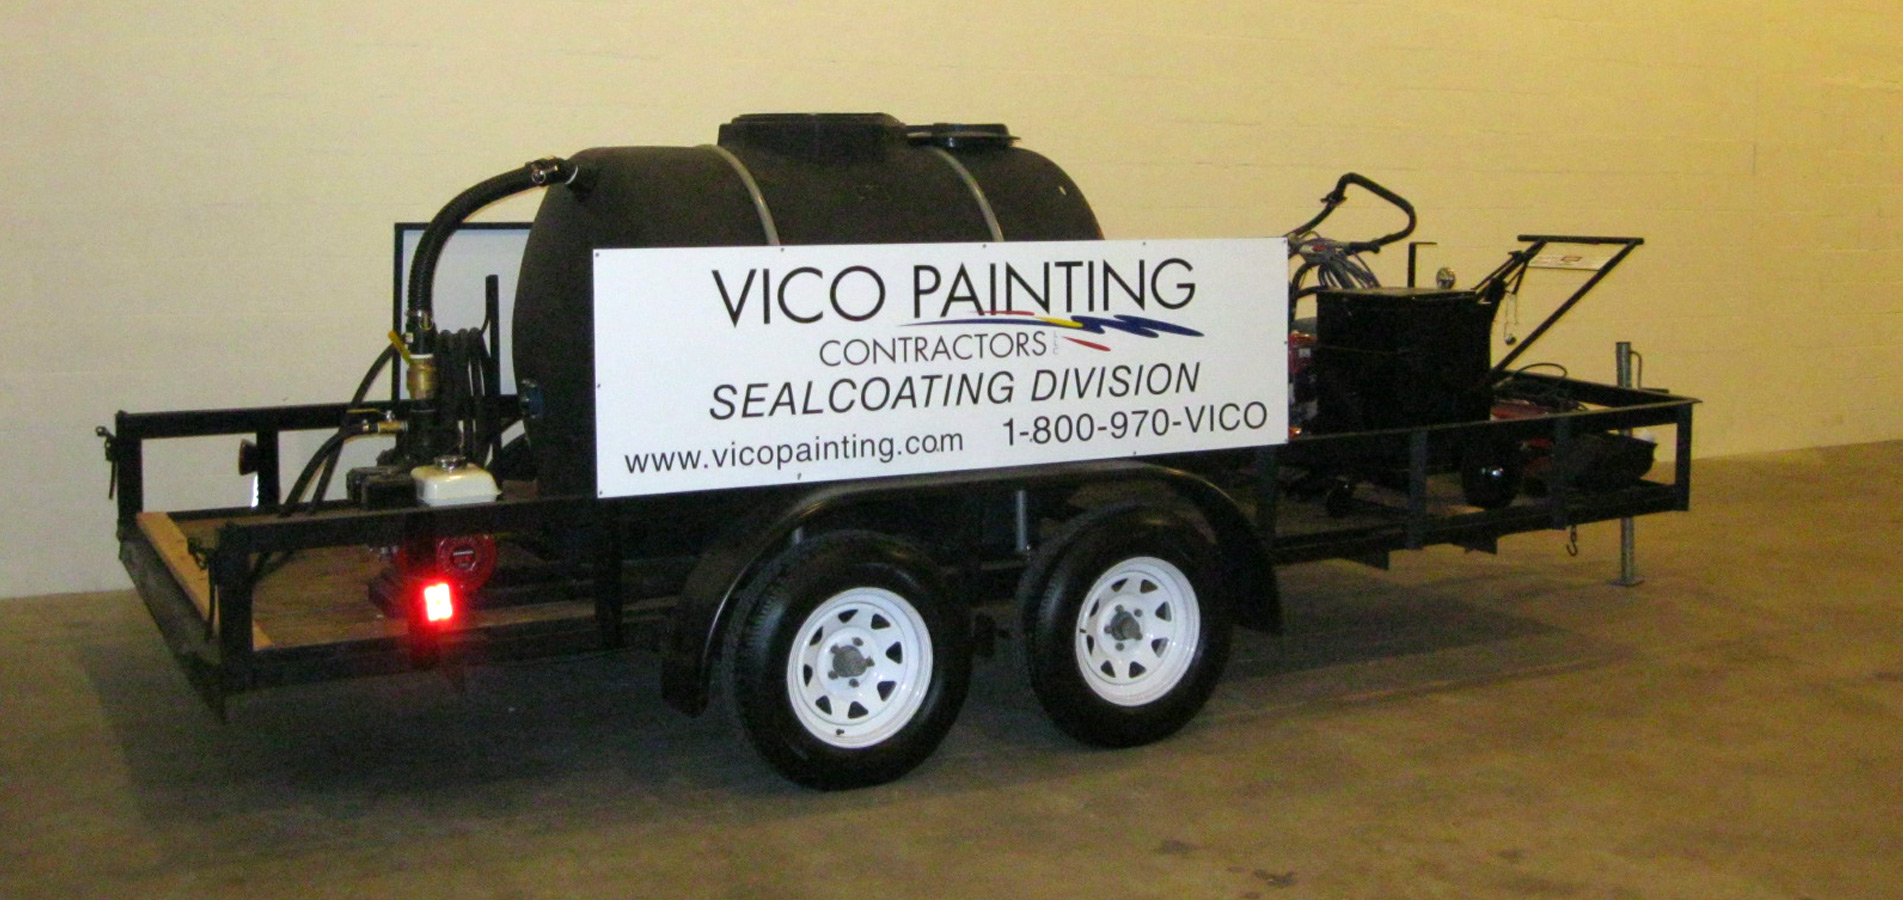 Vico Painting Sealcoating And Striping Services, Miami, Fl